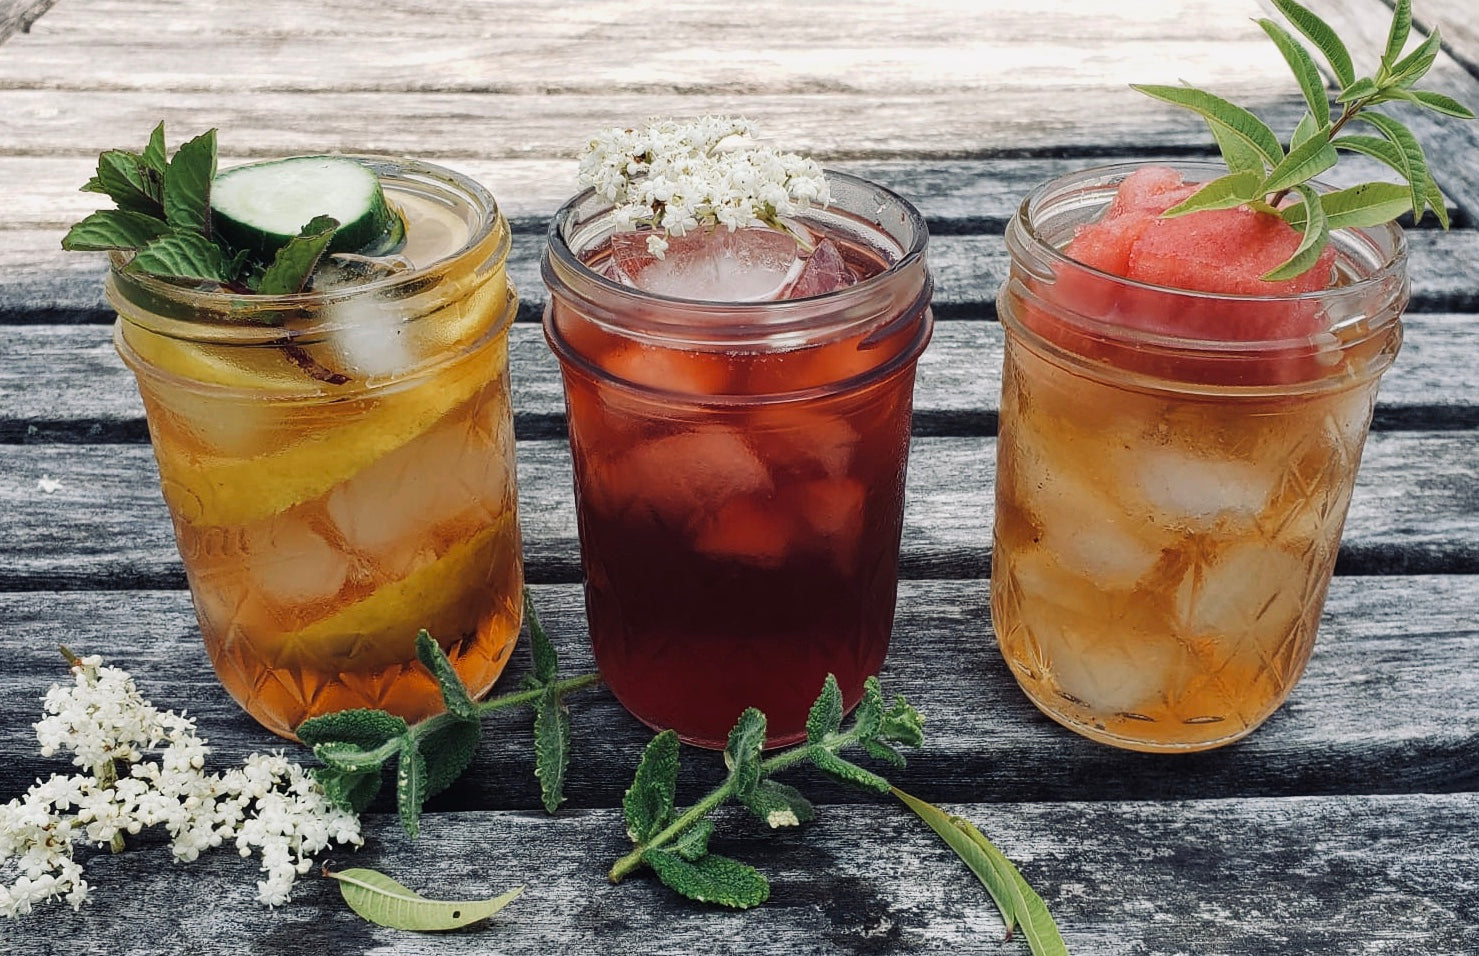 Wild-Roots-Apothecary-Iced-Wellness-Teas